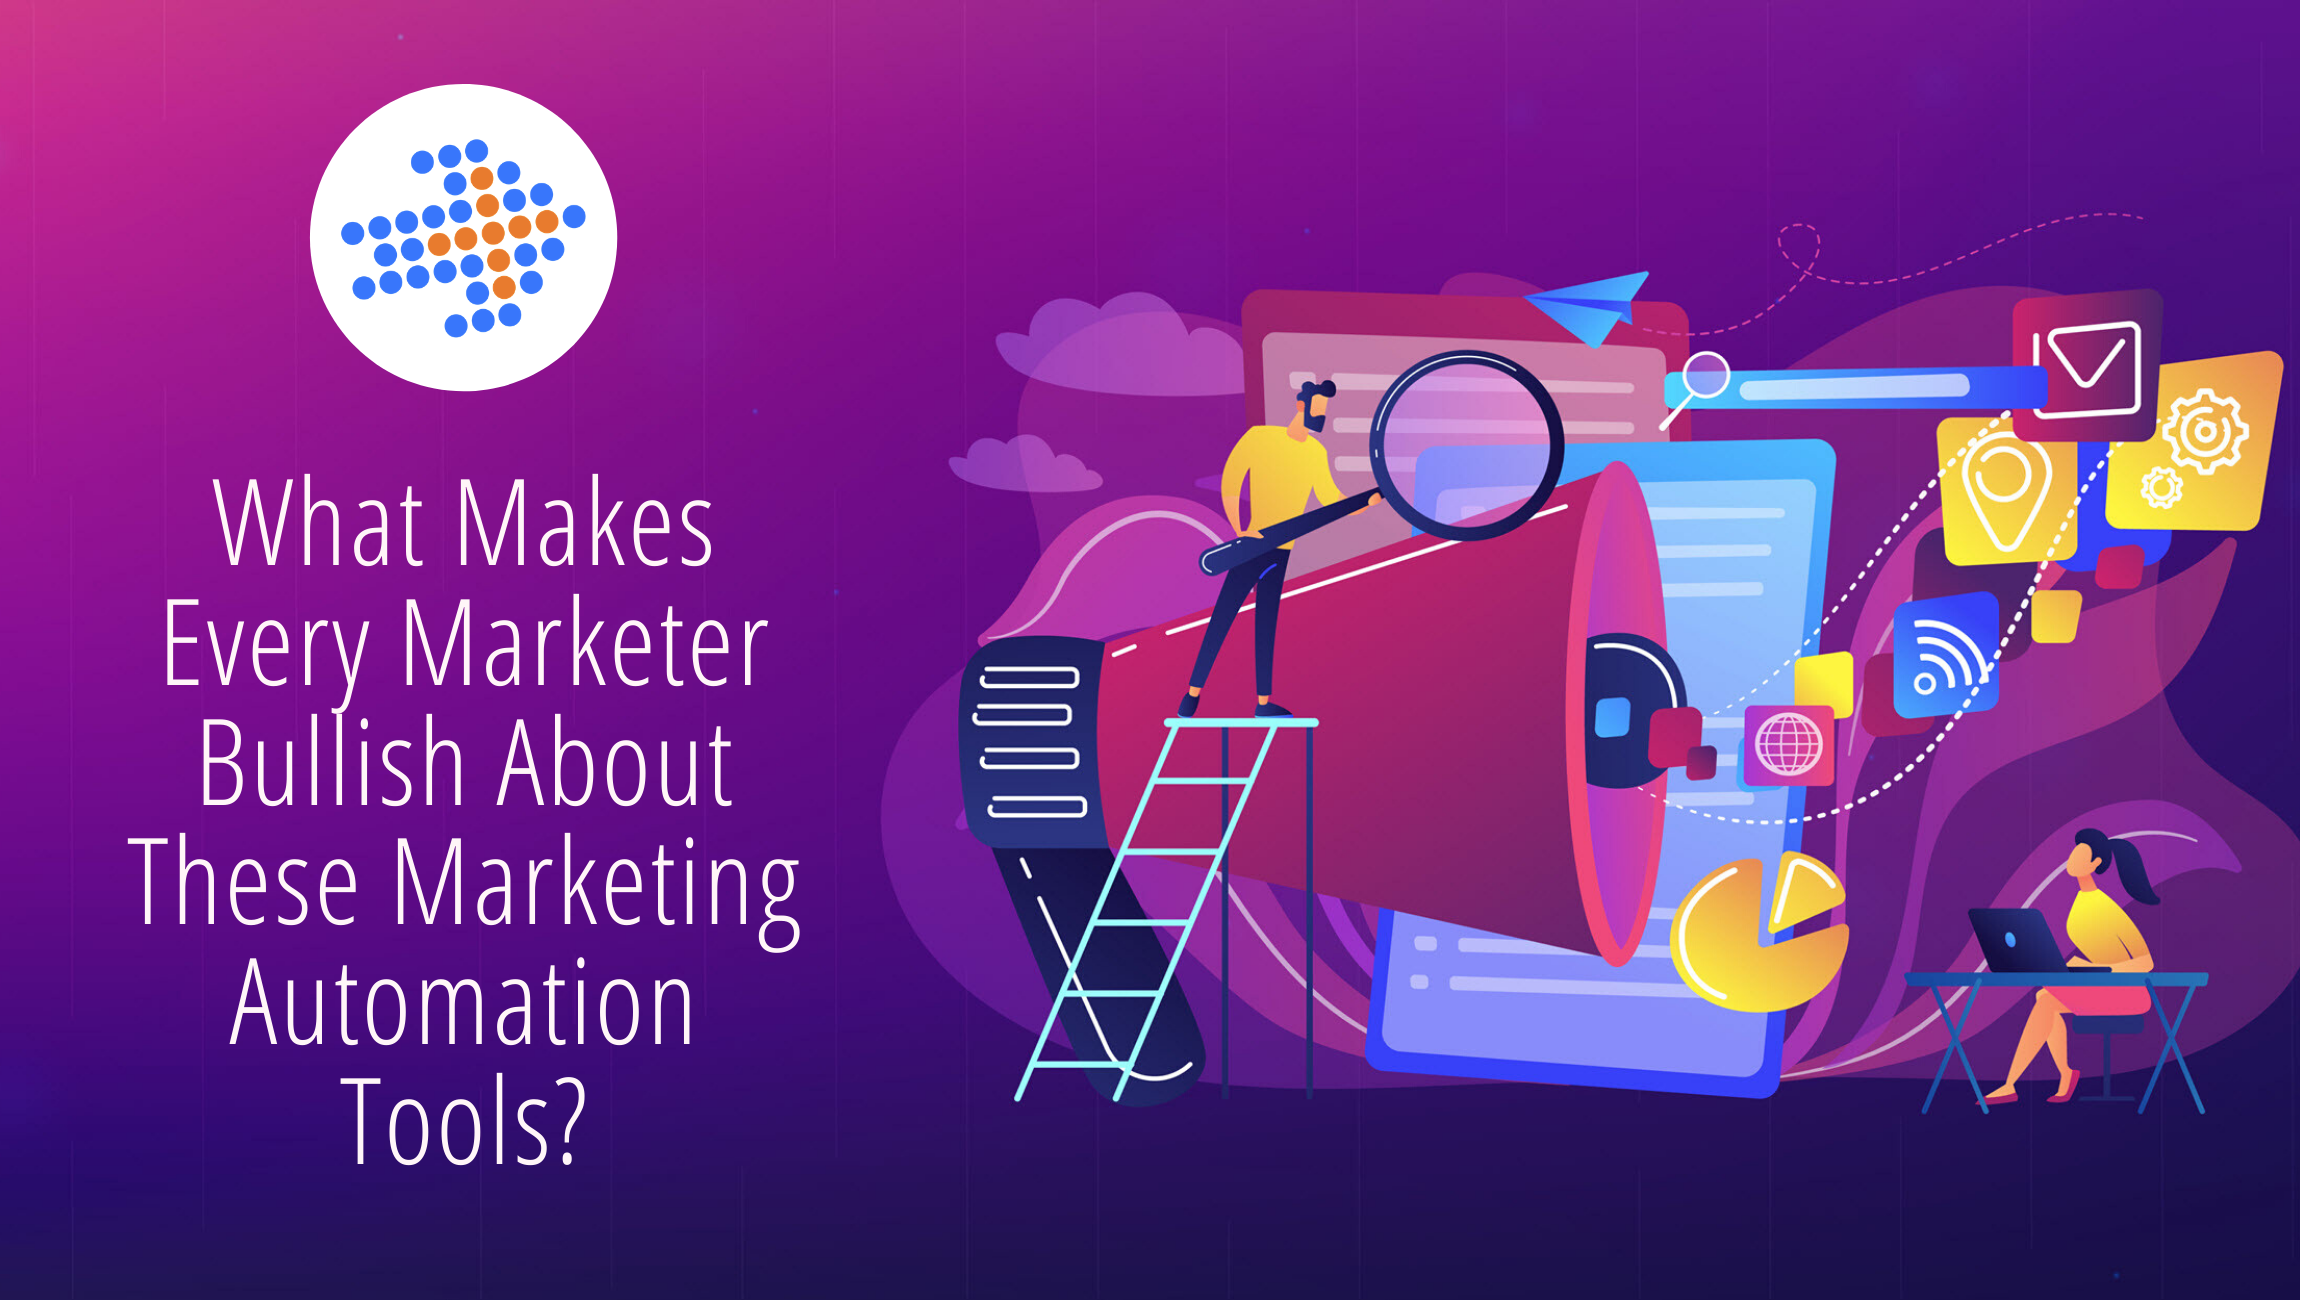 What Makes Every Marketer Bullish About These Marketing Automation Tools_